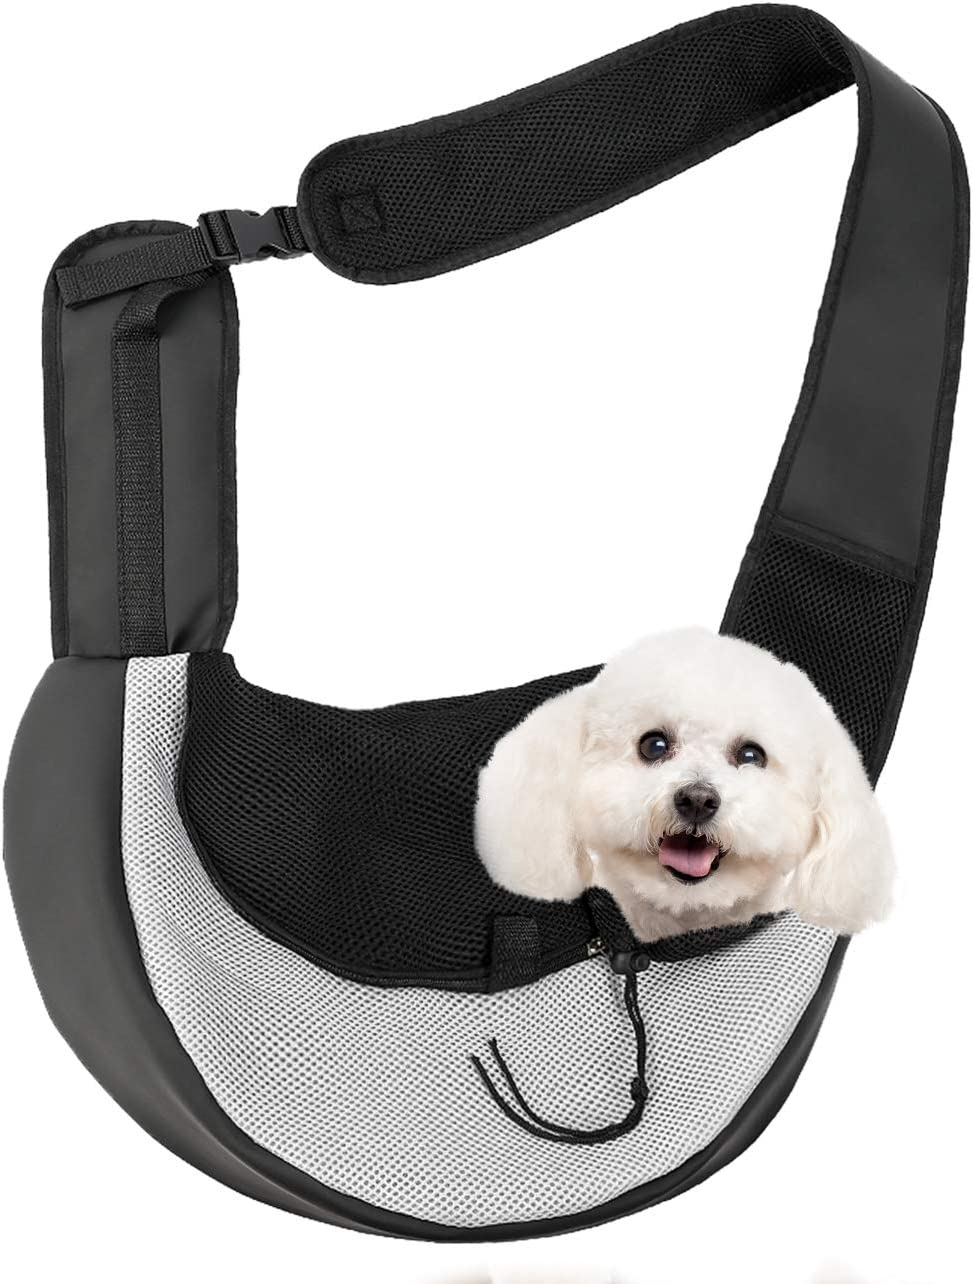 Zero Zoo Pet Dog Carrier Slings Breathable Mesh Travelling Pet Hands, Zipper Anti-Pinch Hair Design, Adjustable Padded Strap Tote Dog and Cat Carrier Bag : Pet Supplies